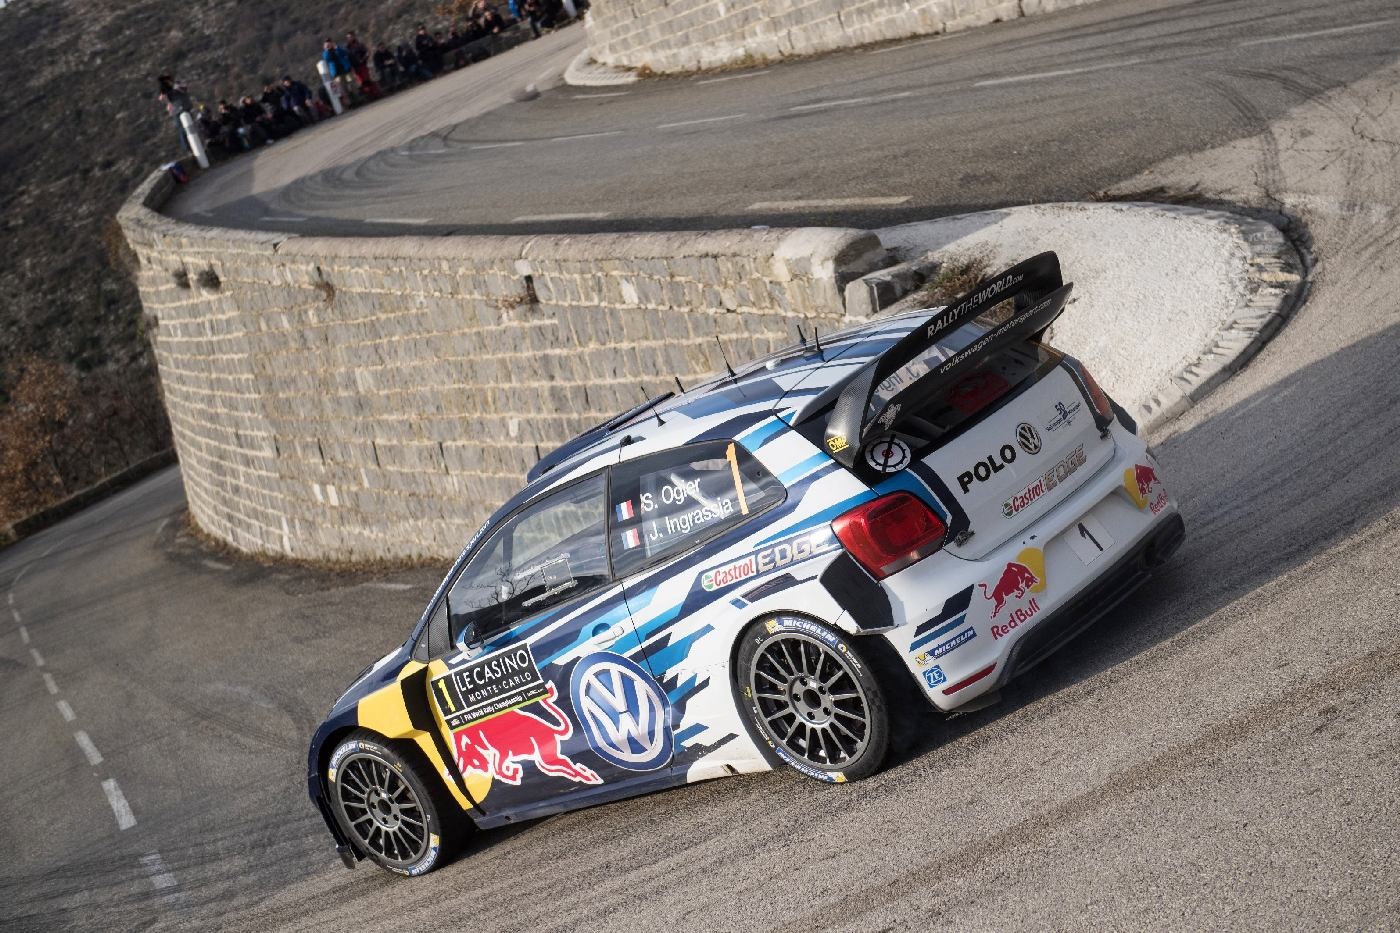 Sebastien Ogier (FRA) competes during the FIA World Rally Championship 2016 in Monte Carlo, Monaco on January 24, 2016